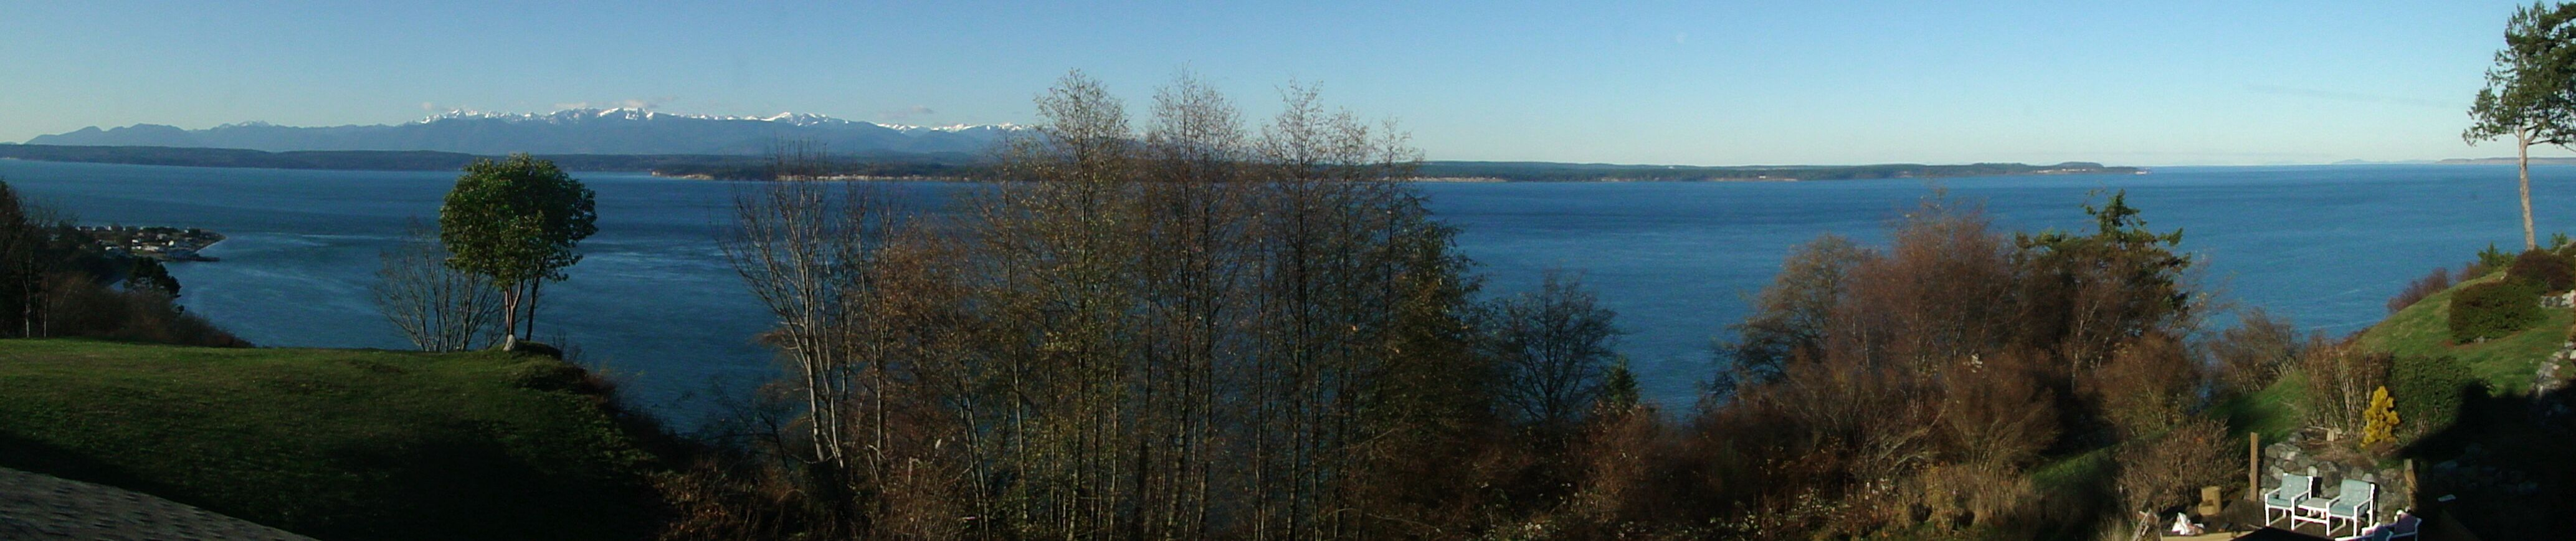 Panoramic digital photo of the Olympic Mountains I took from our home on December 5, 2009.